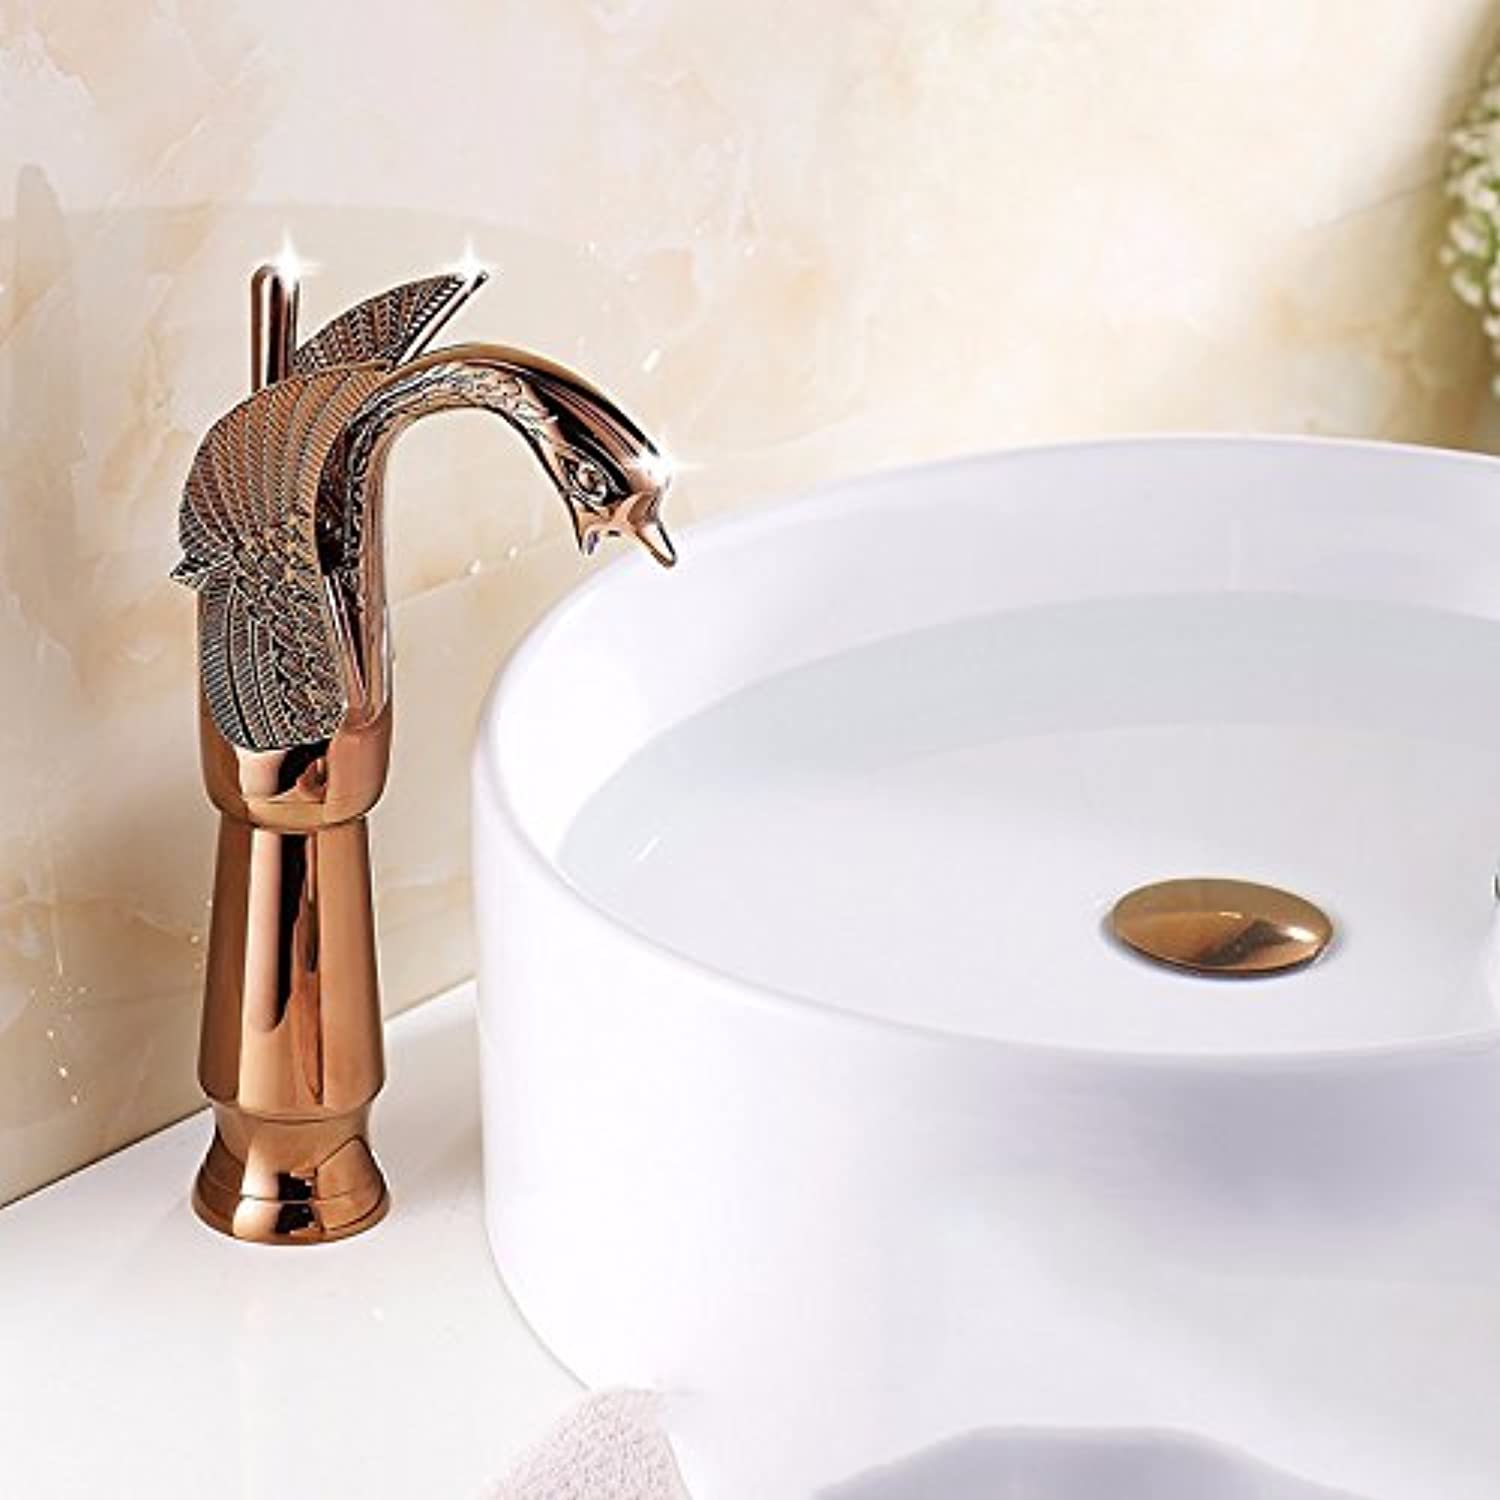 LHbox Basin Mixer Tap Bathroom Sink Faucet Euro-copper pink gold taps toilets hot and cold basin gold plated basin surface basin Faucet